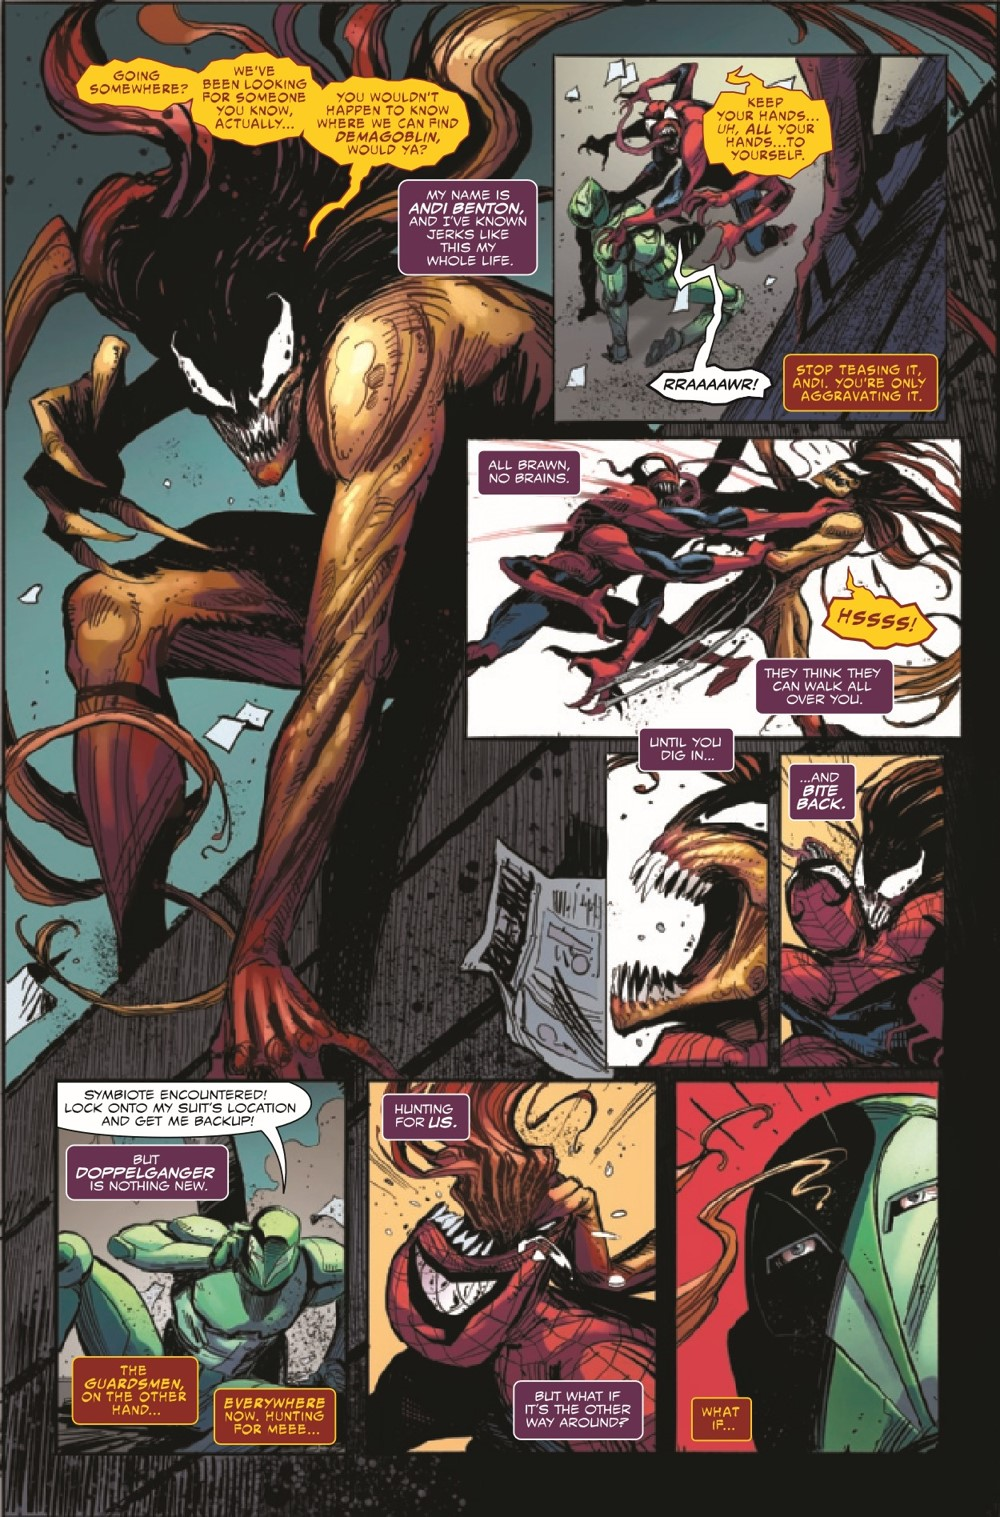 EXTCARNSC2021001_Preview-6 ComicList Previews: EXTREME CARNAGE SCREAM #1